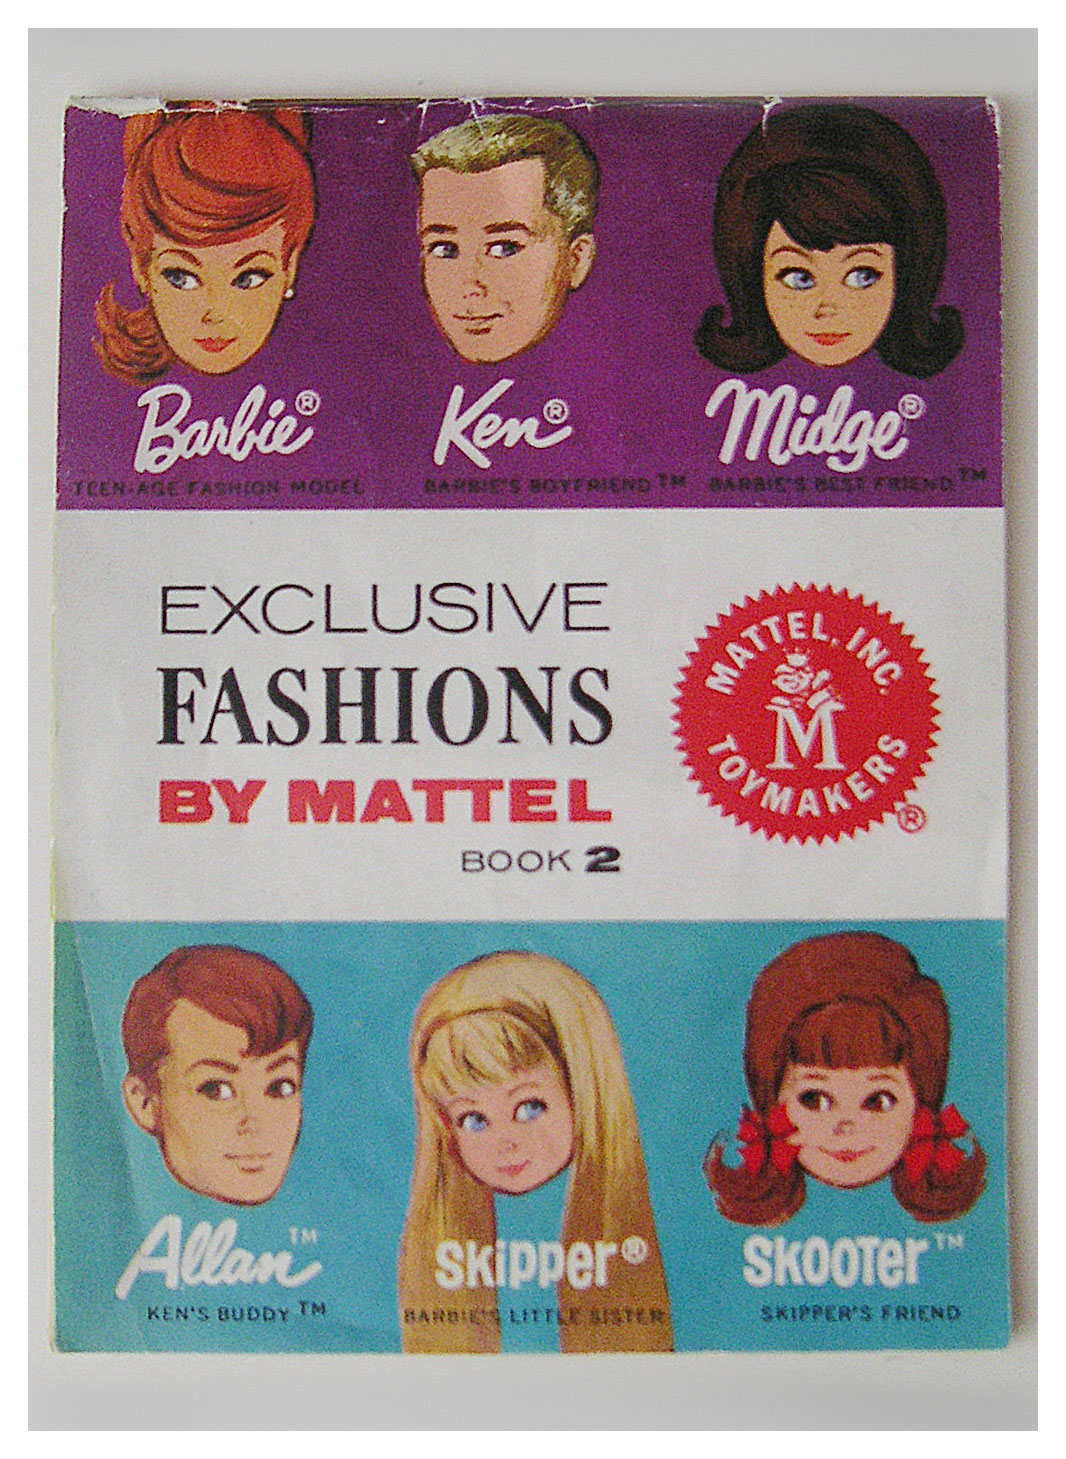 1965 Fashion Exclusives book 2